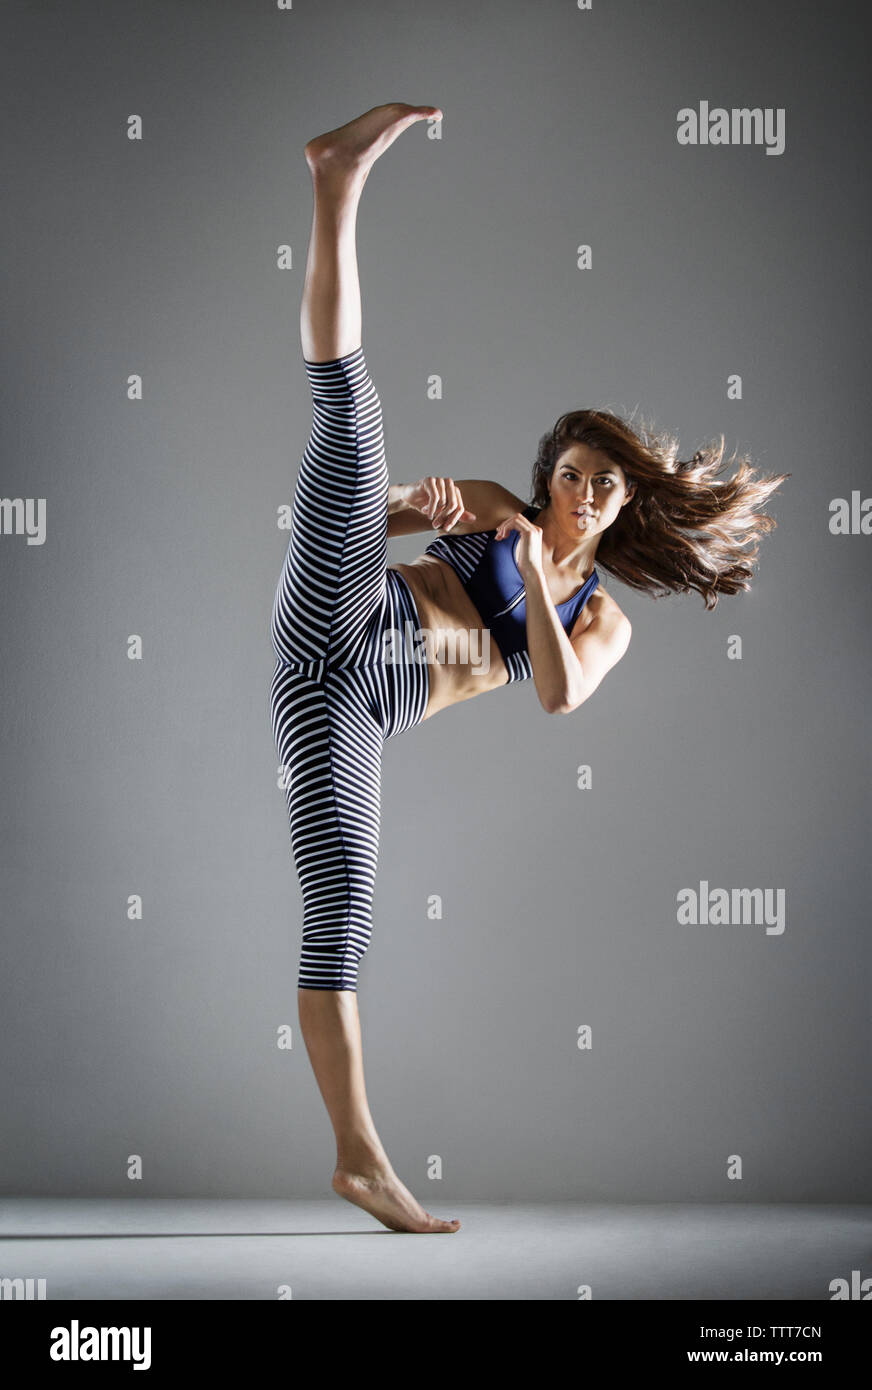 Portrait of woman practicing kick against gray background - Stock Image